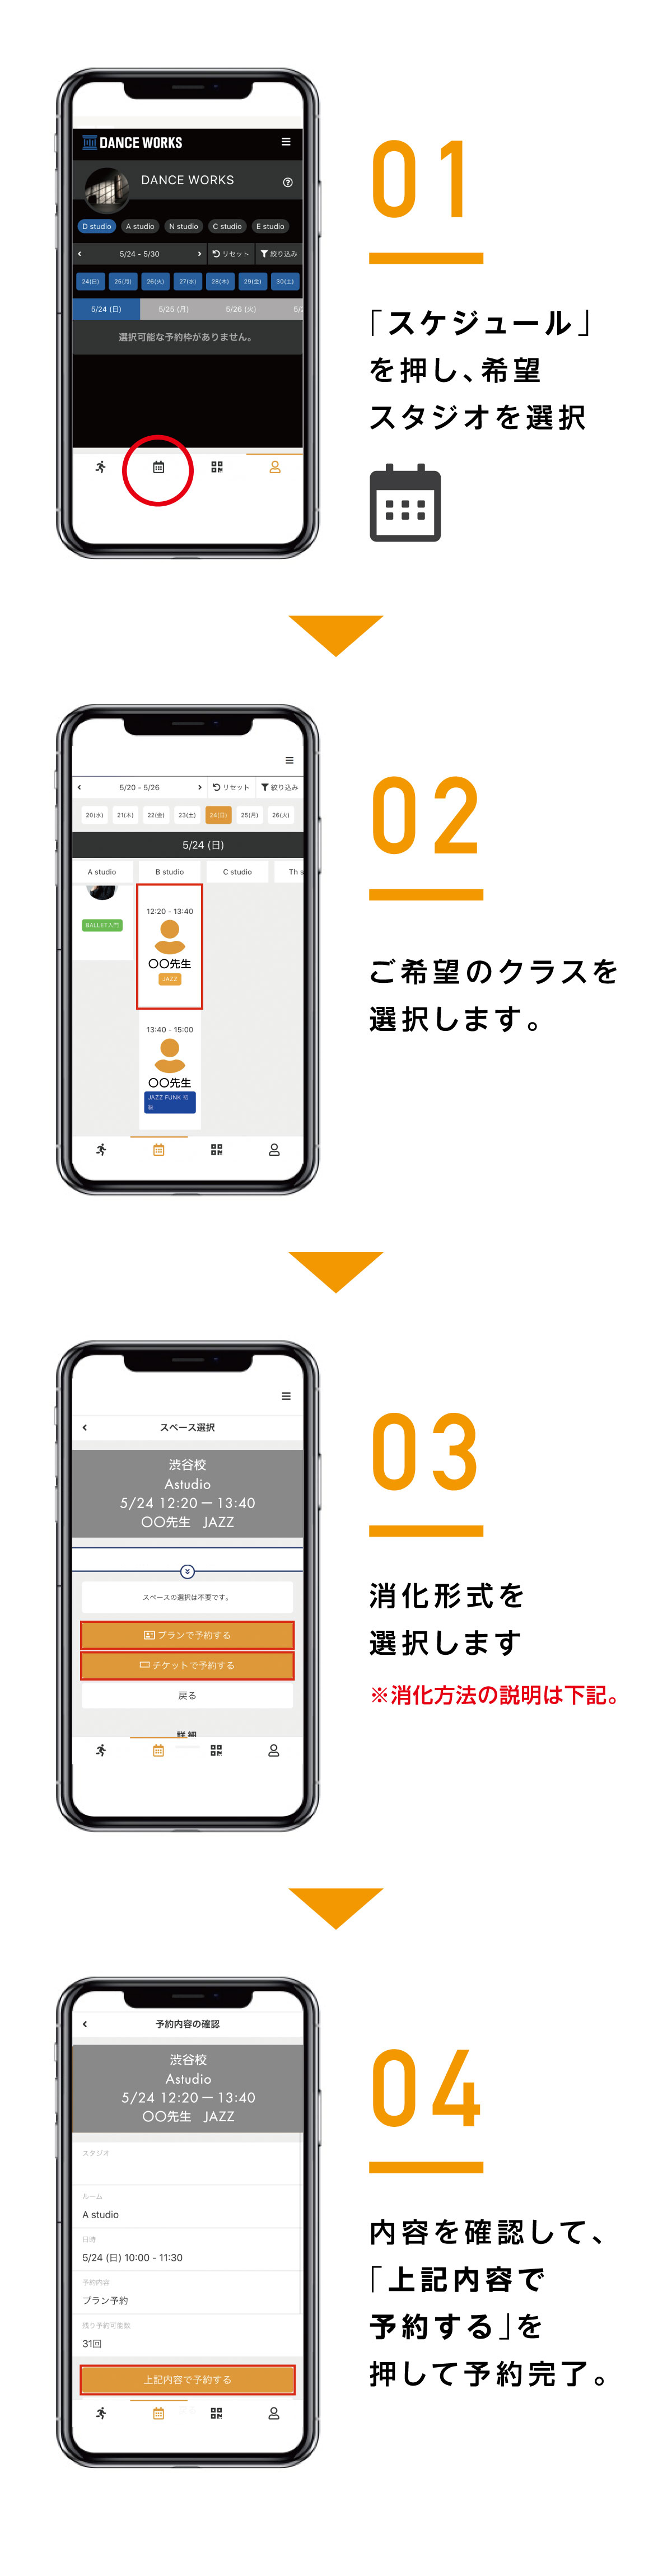 info_04_olworks